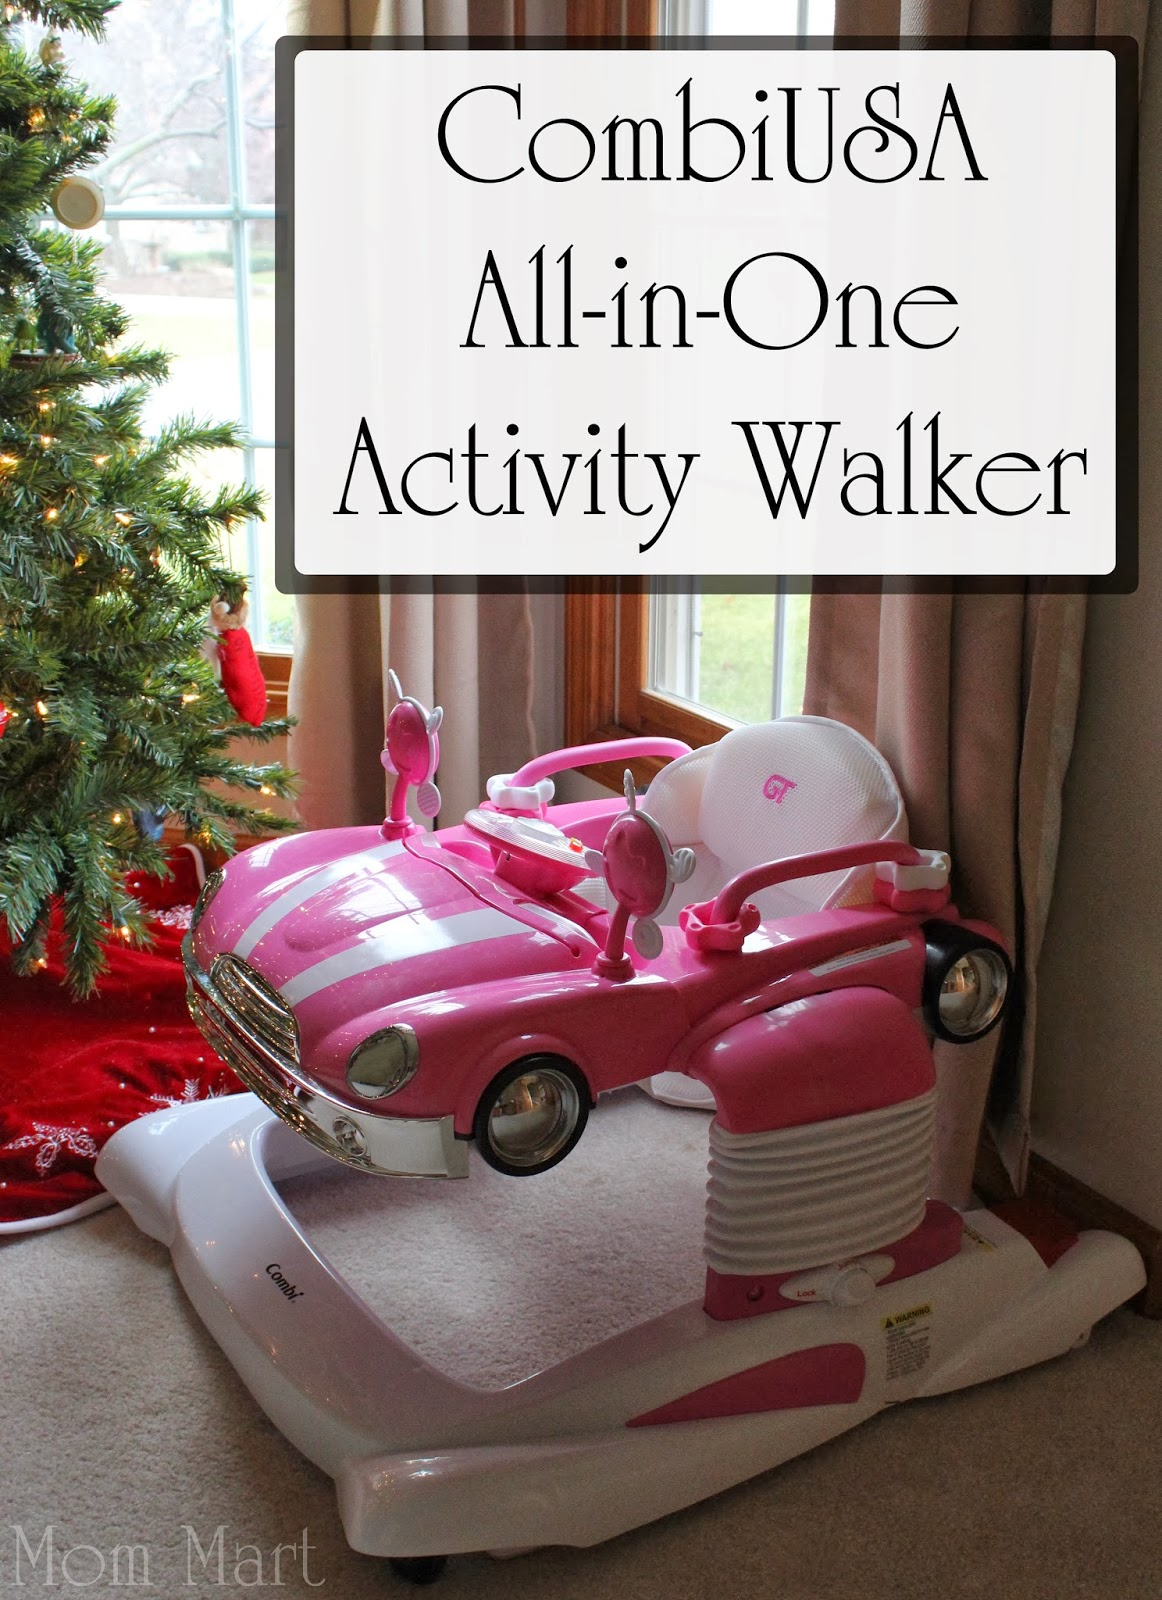 Mom Mart A Great T For Baby The Combiusa All In One Activity Walker Review